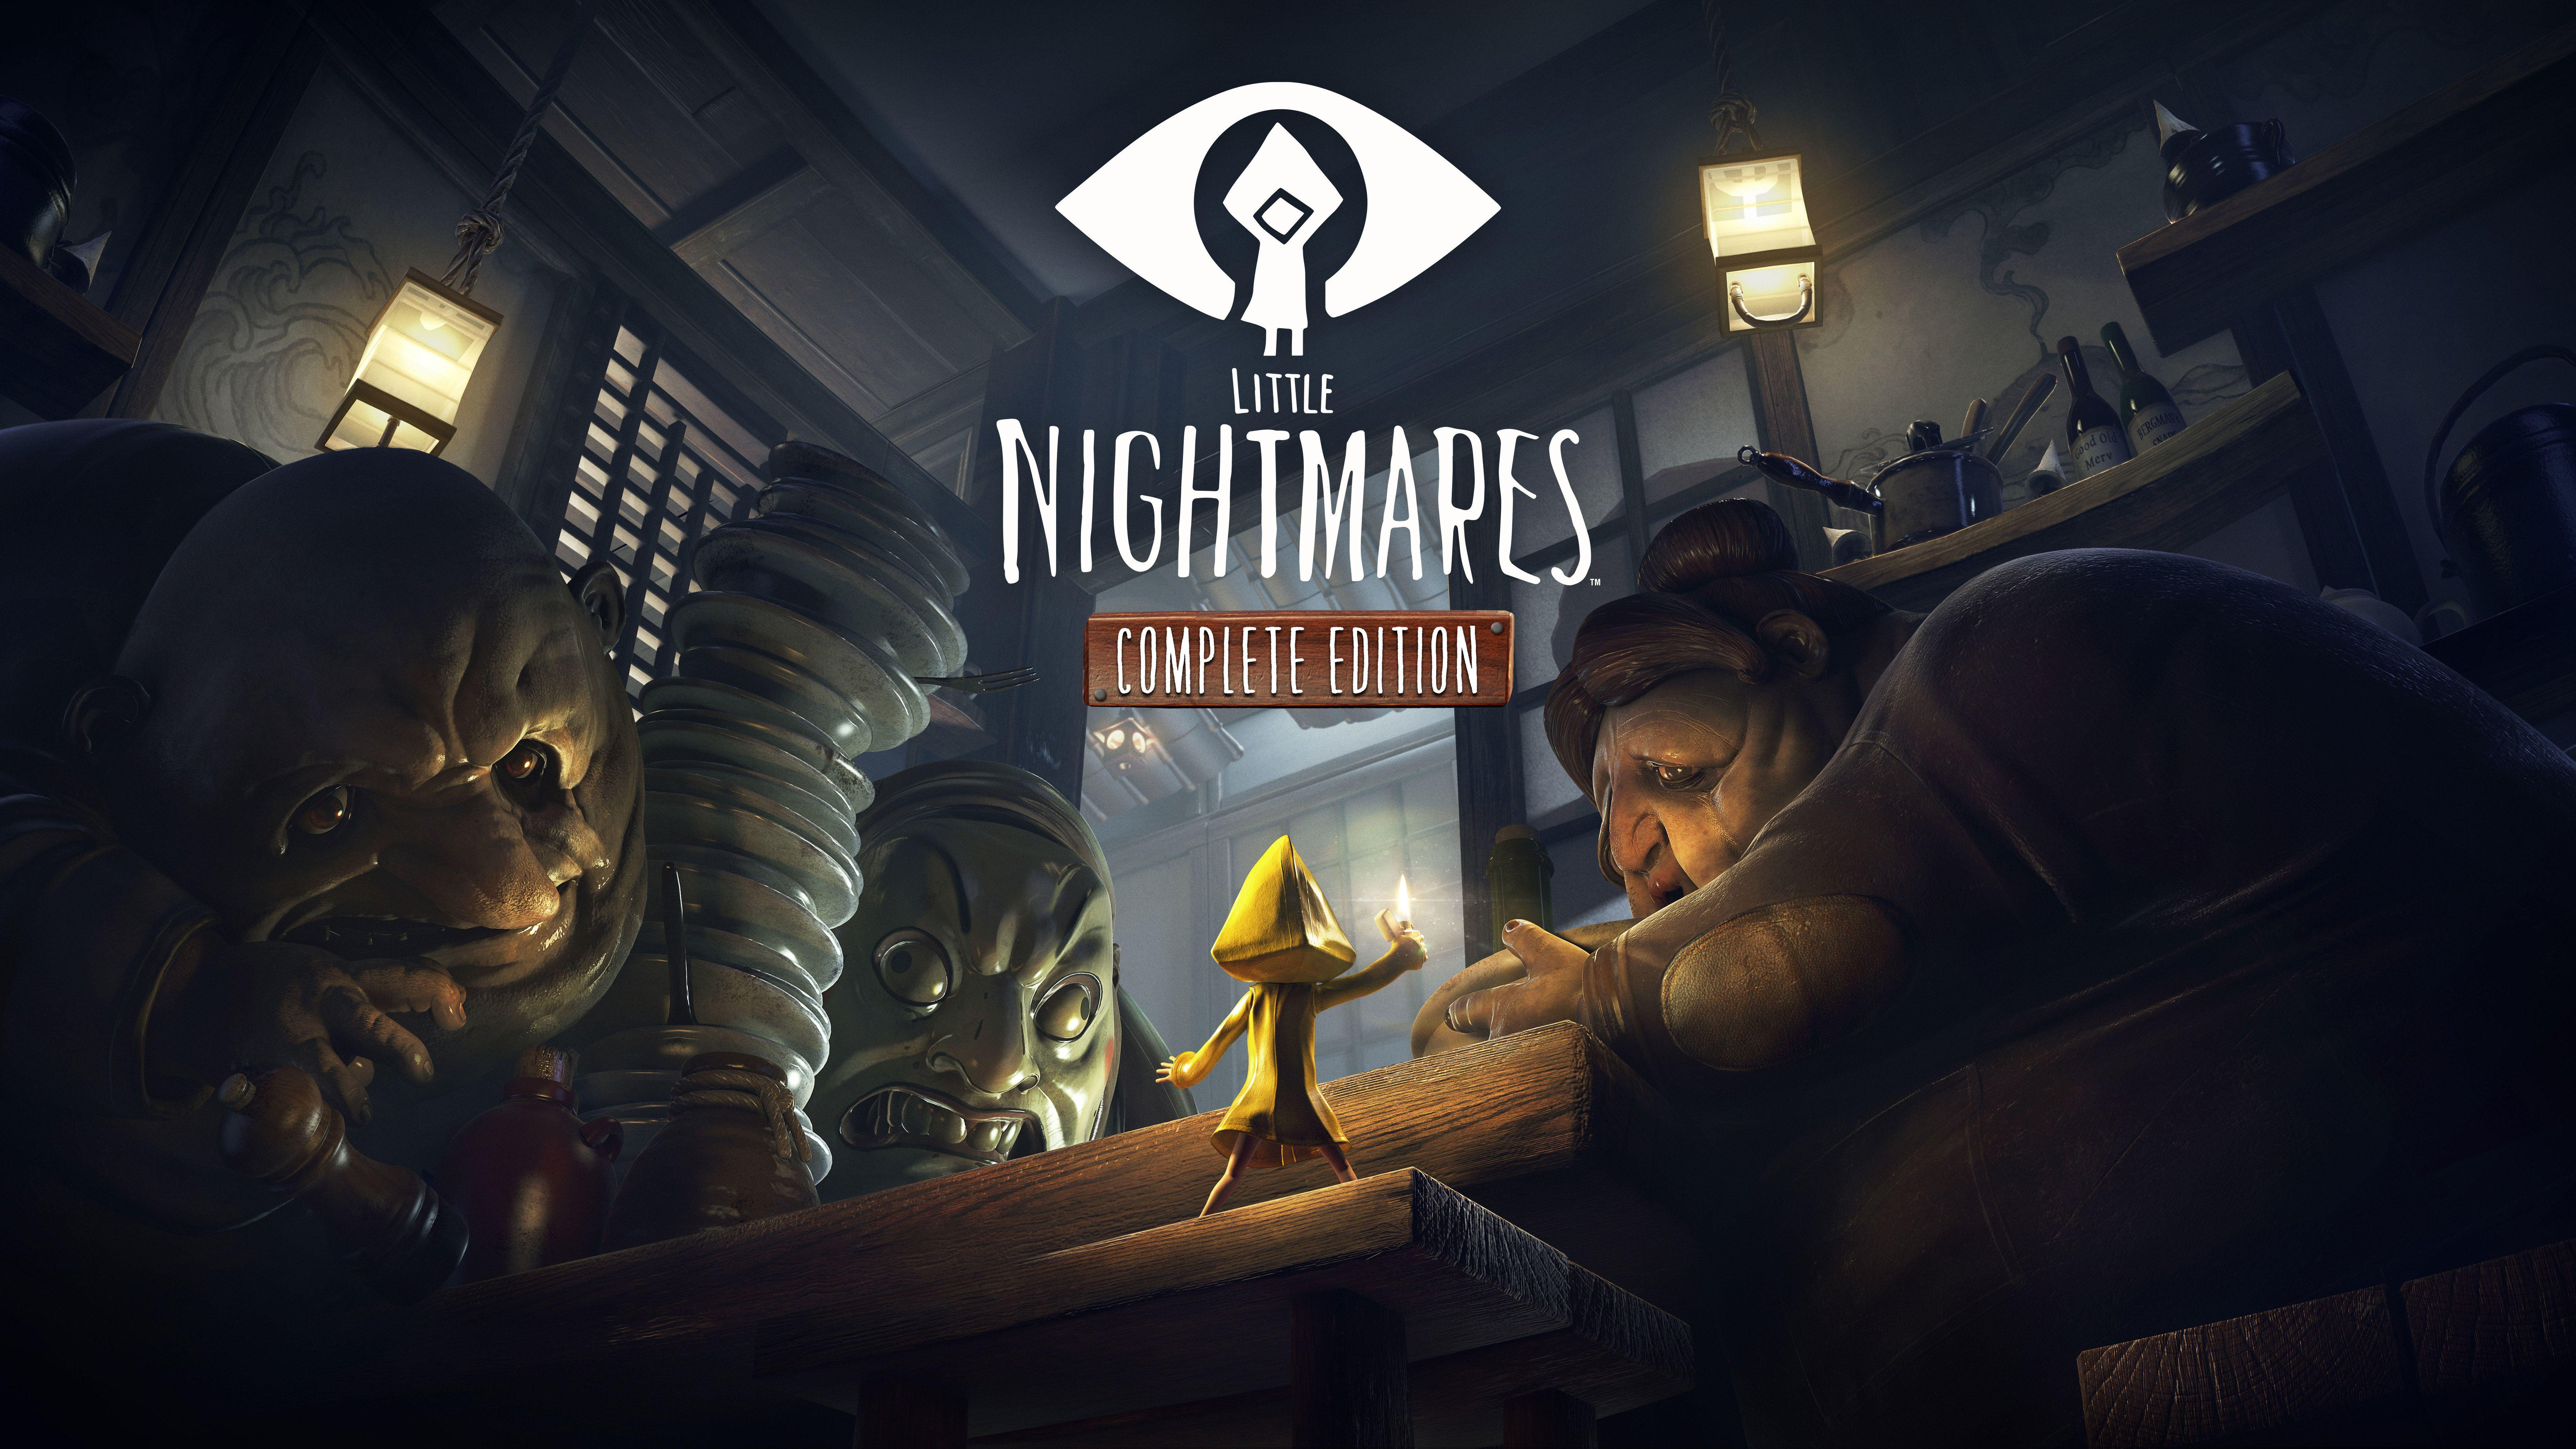 Little Nightmares Complete Edition Wallpapers Wallpaper Cave